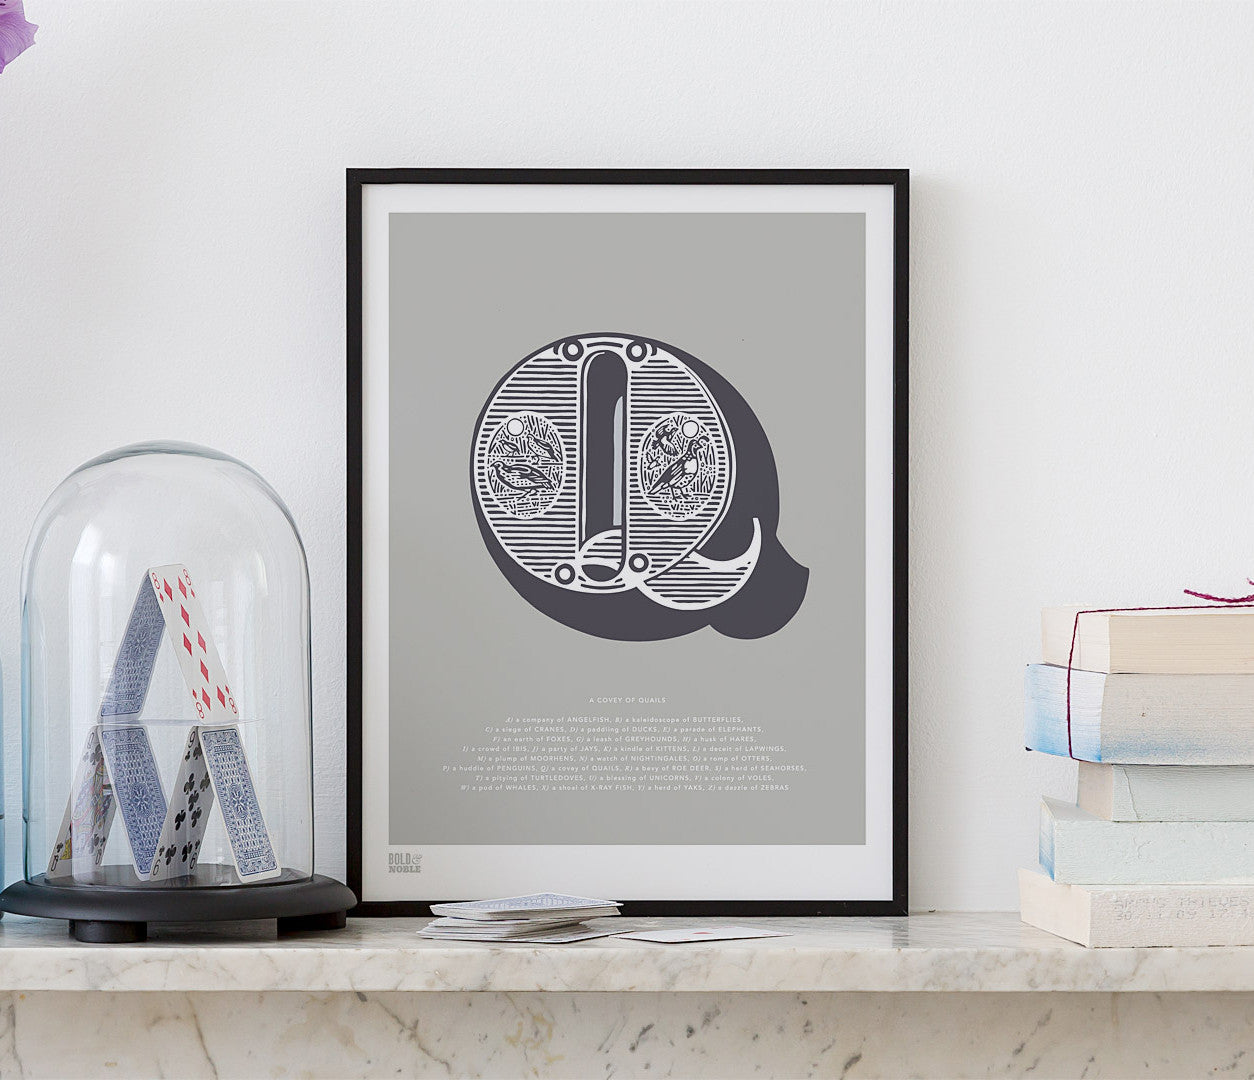 Pictures and Wall Art, Screen Printed Illustrated Letter Q design in putty grey